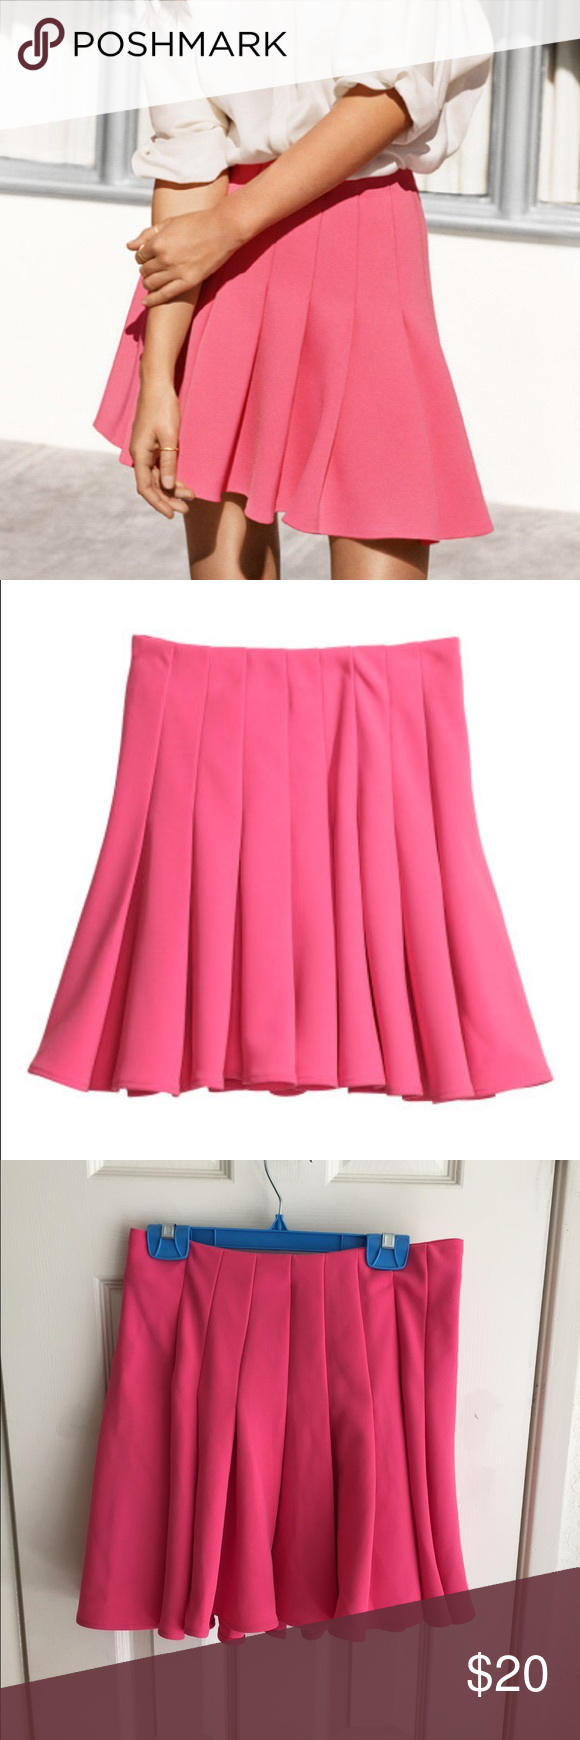 H&M pink pleated skater skirt (With images) | Skirts ...